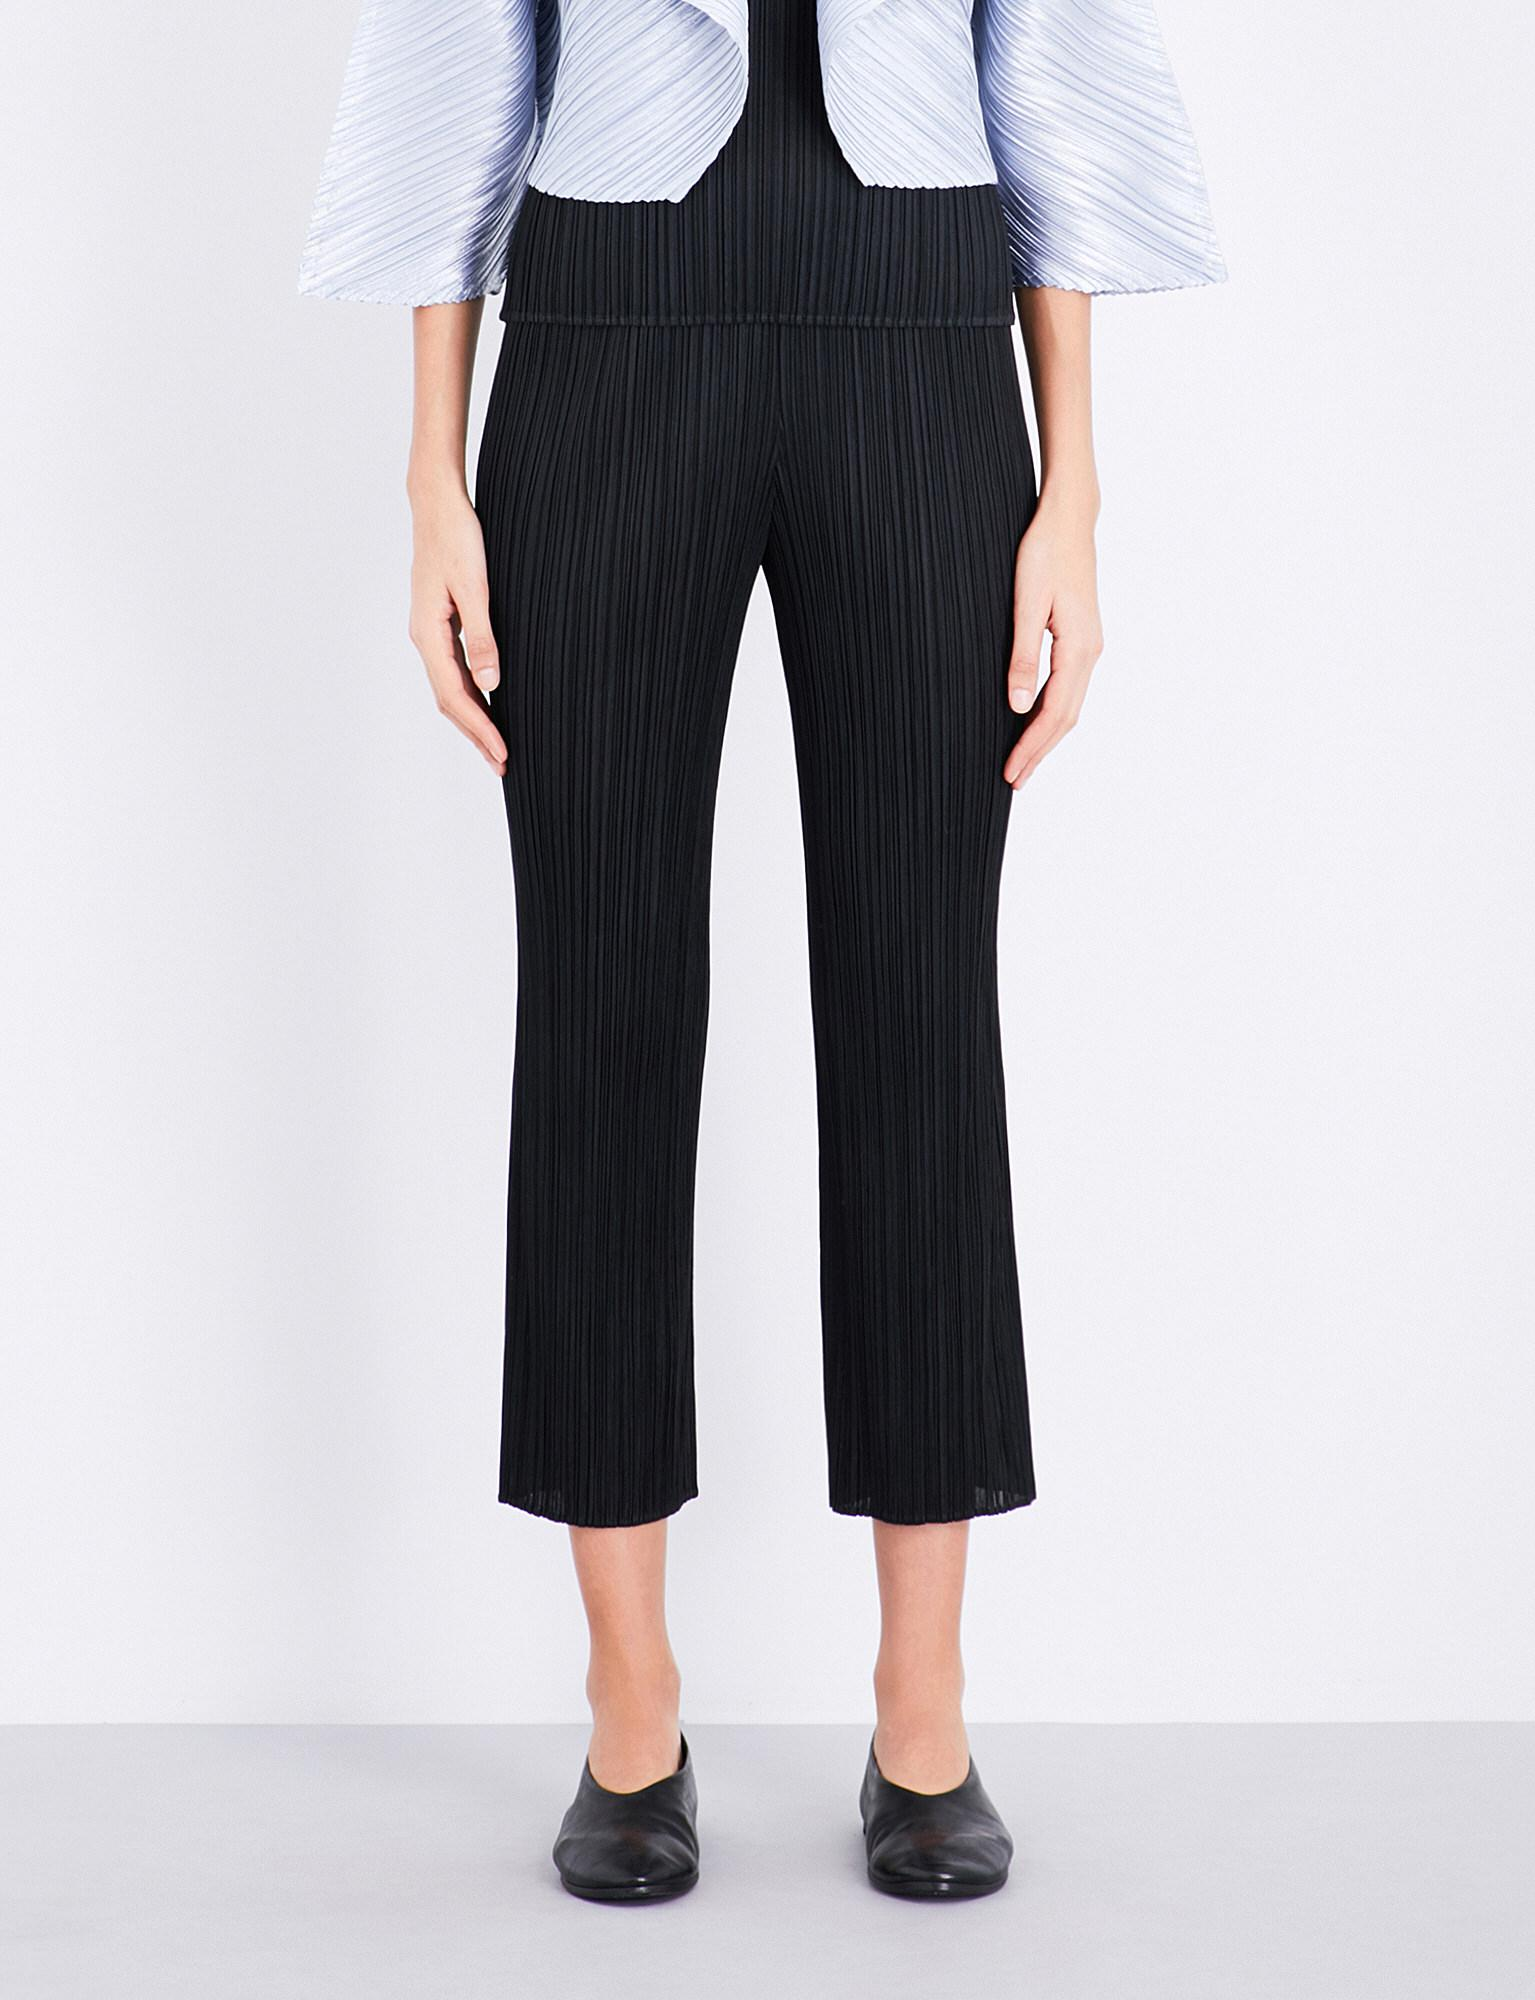 44ef1c14a098 Lyst - Pleats Please Issey Miyake Cropped Slim Pleated Trousers in Black